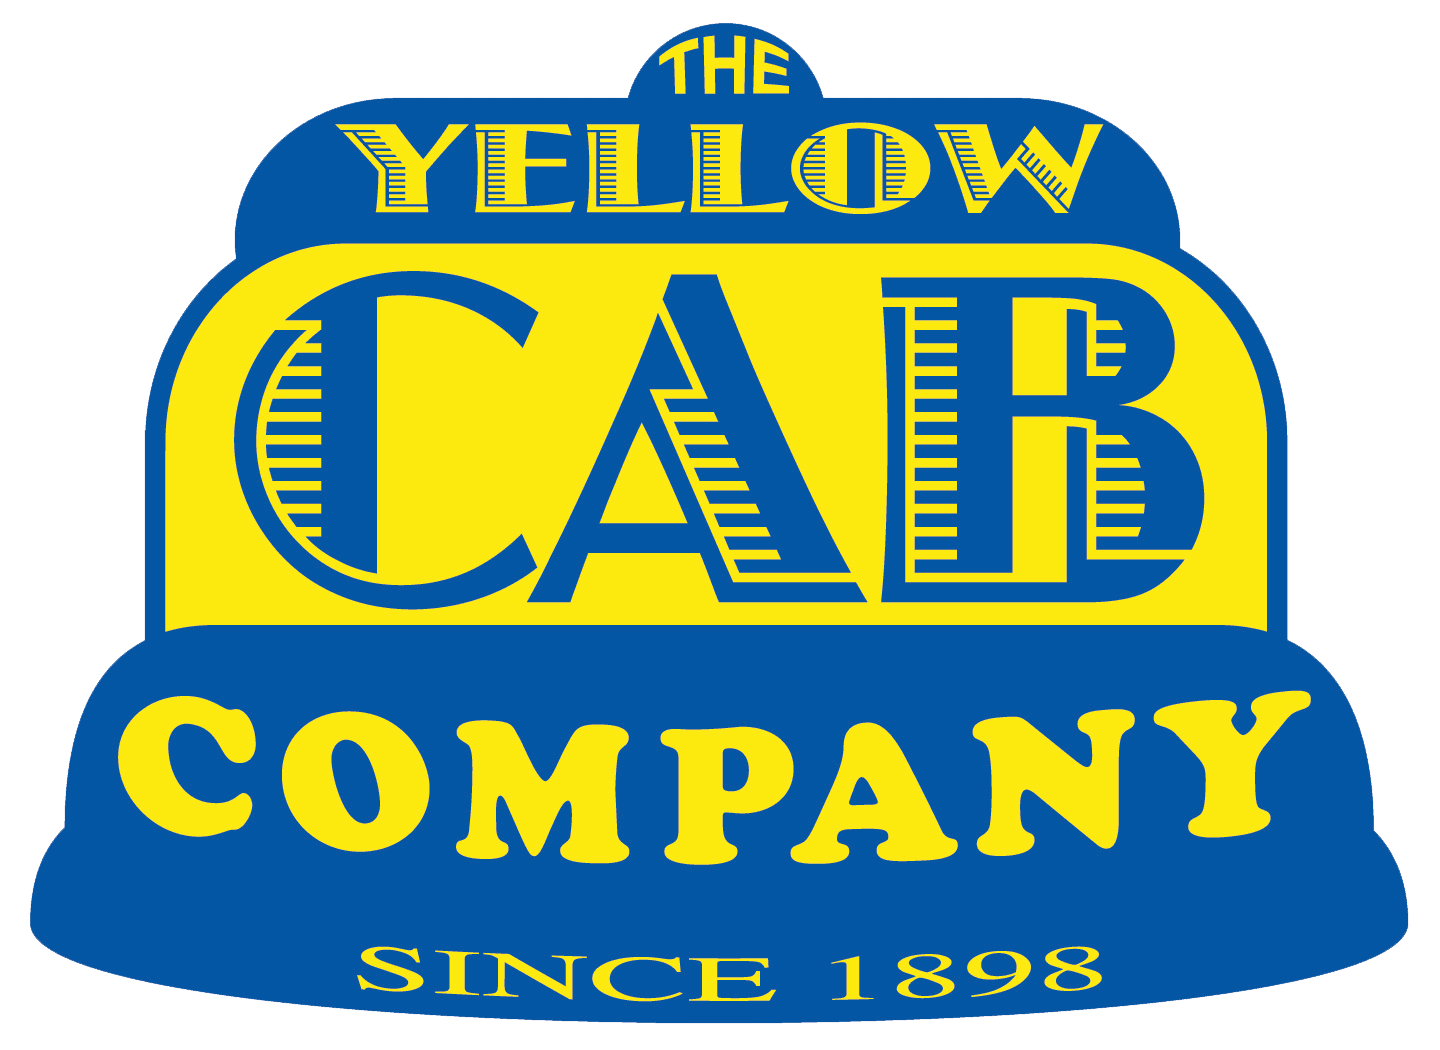 The Yellow Cab Company